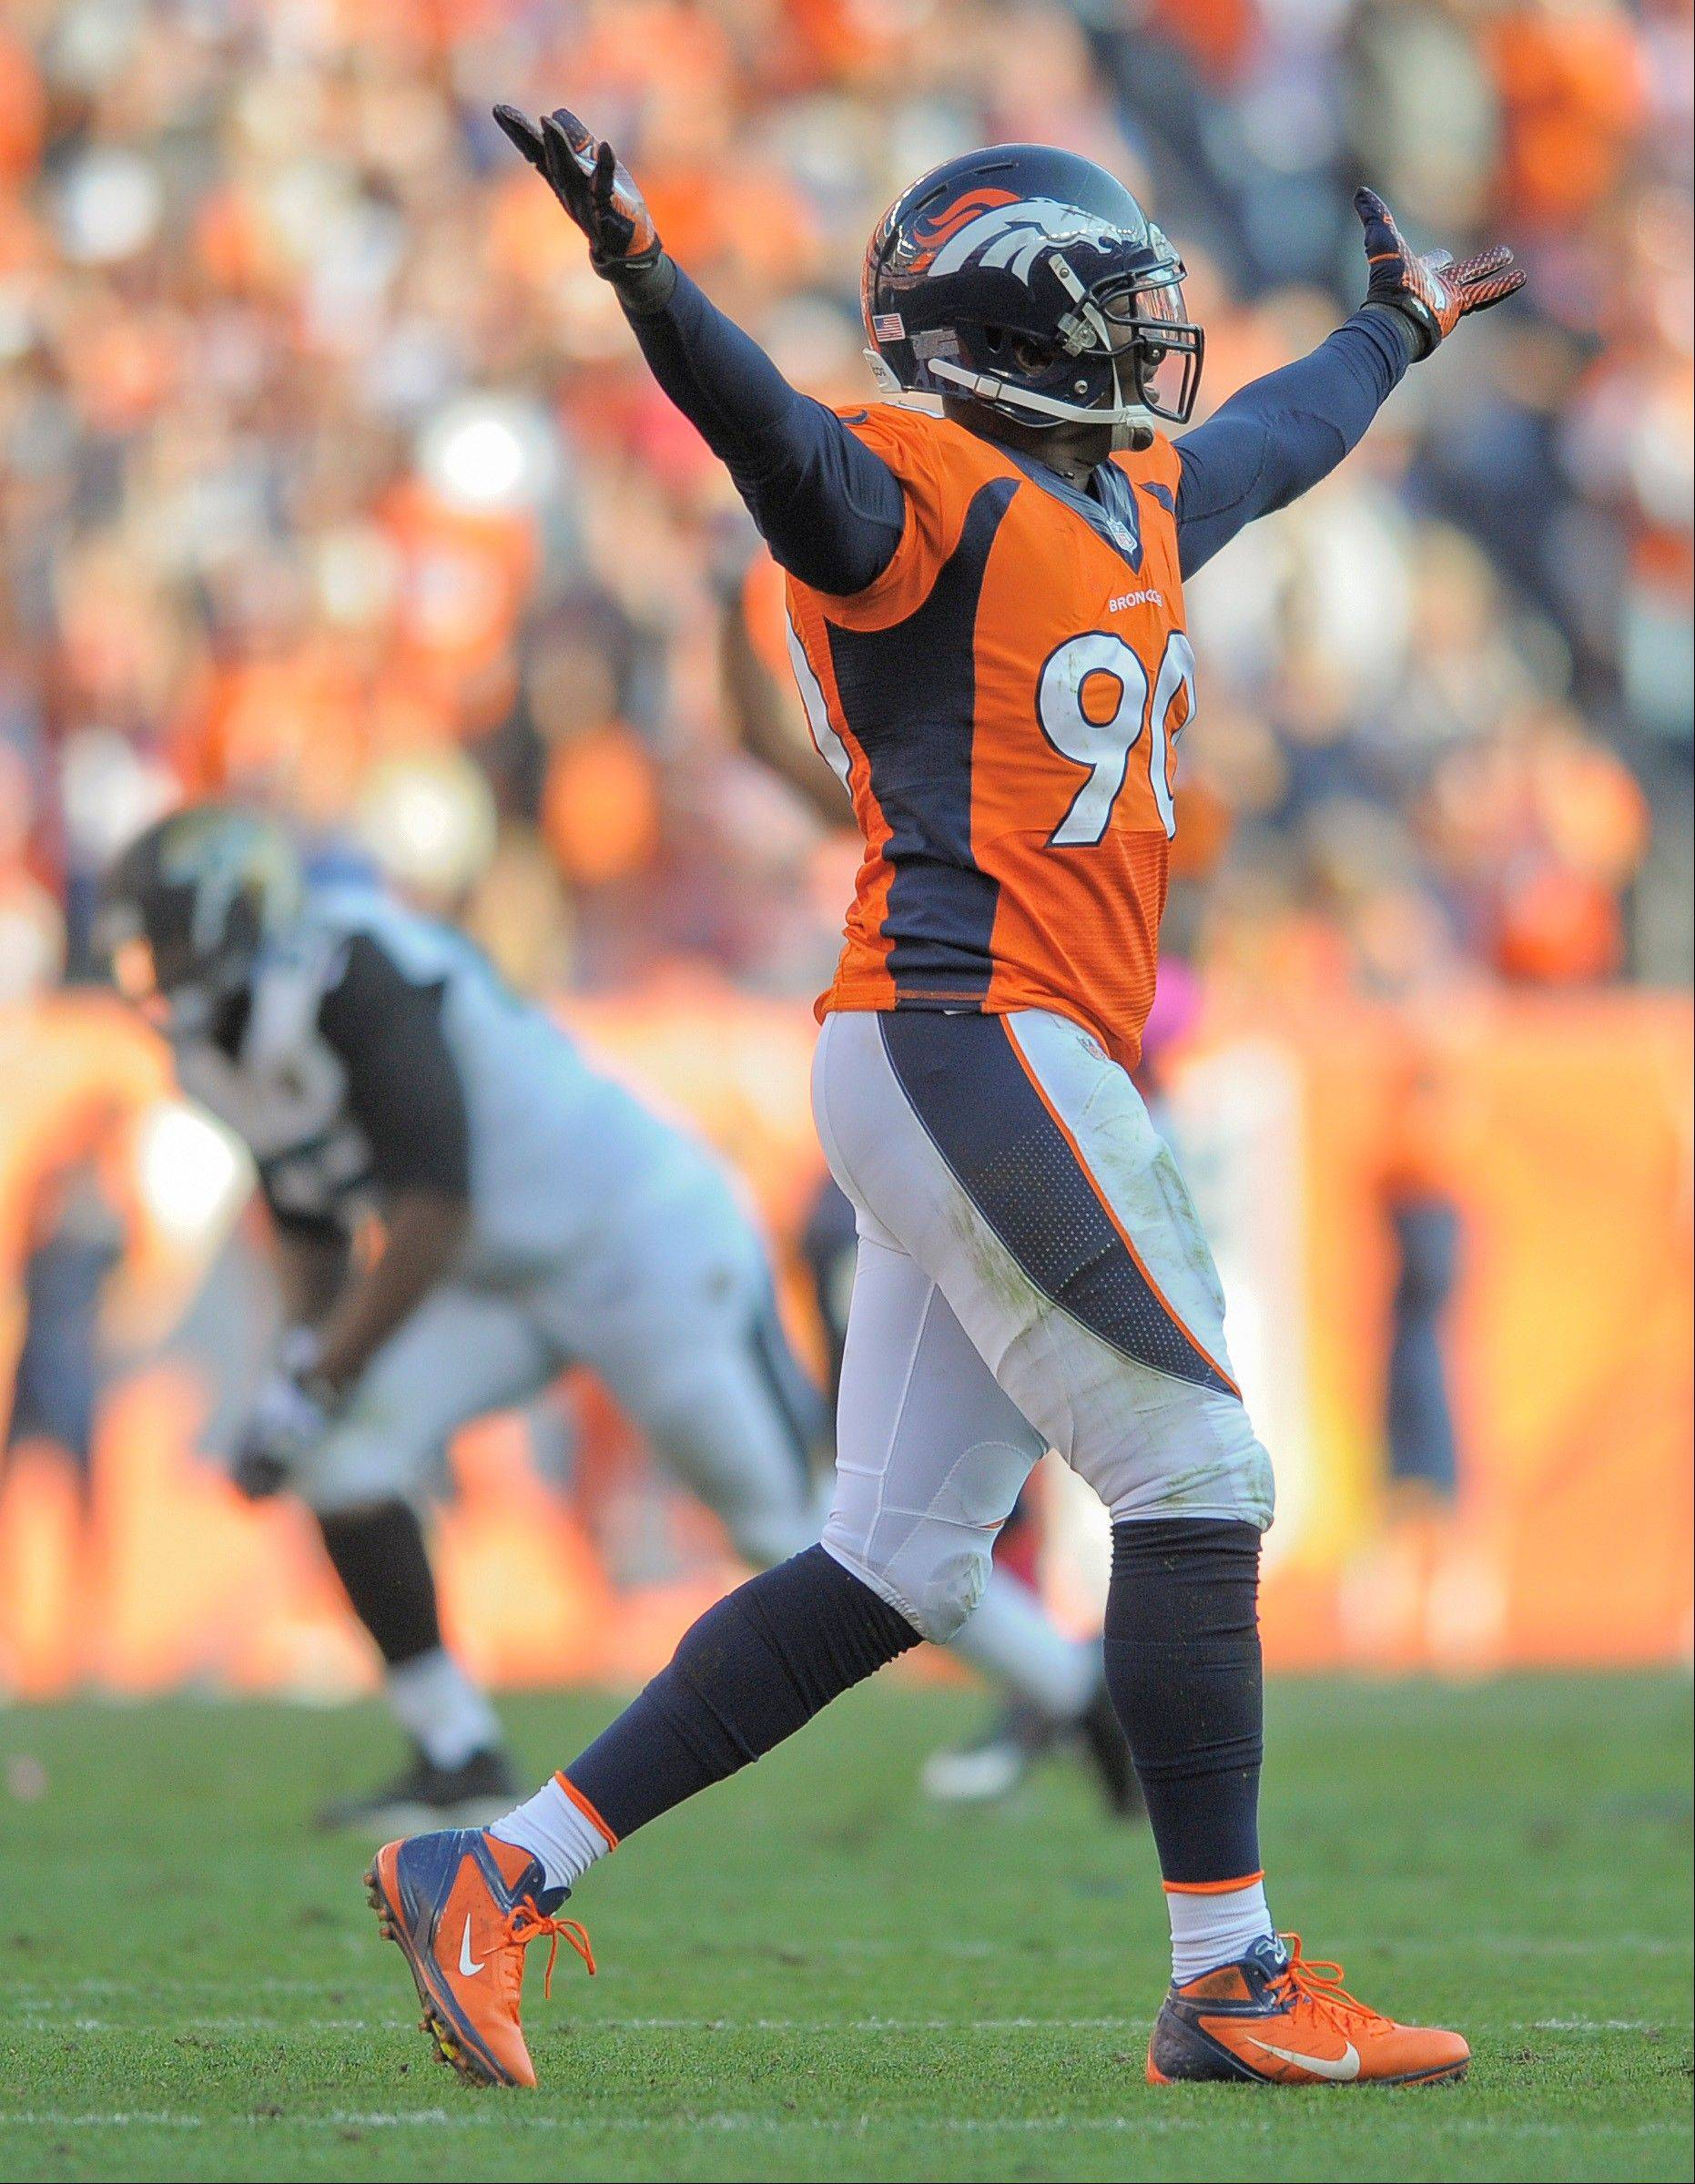 Denver Broncos defensive end Shaun Phillips (90) raises up his arms after a defensive play against the Jacksonville Jaguars in the fourth quarter of an NFL football game, Sunday, Oct. 13, 2013, in Denver.